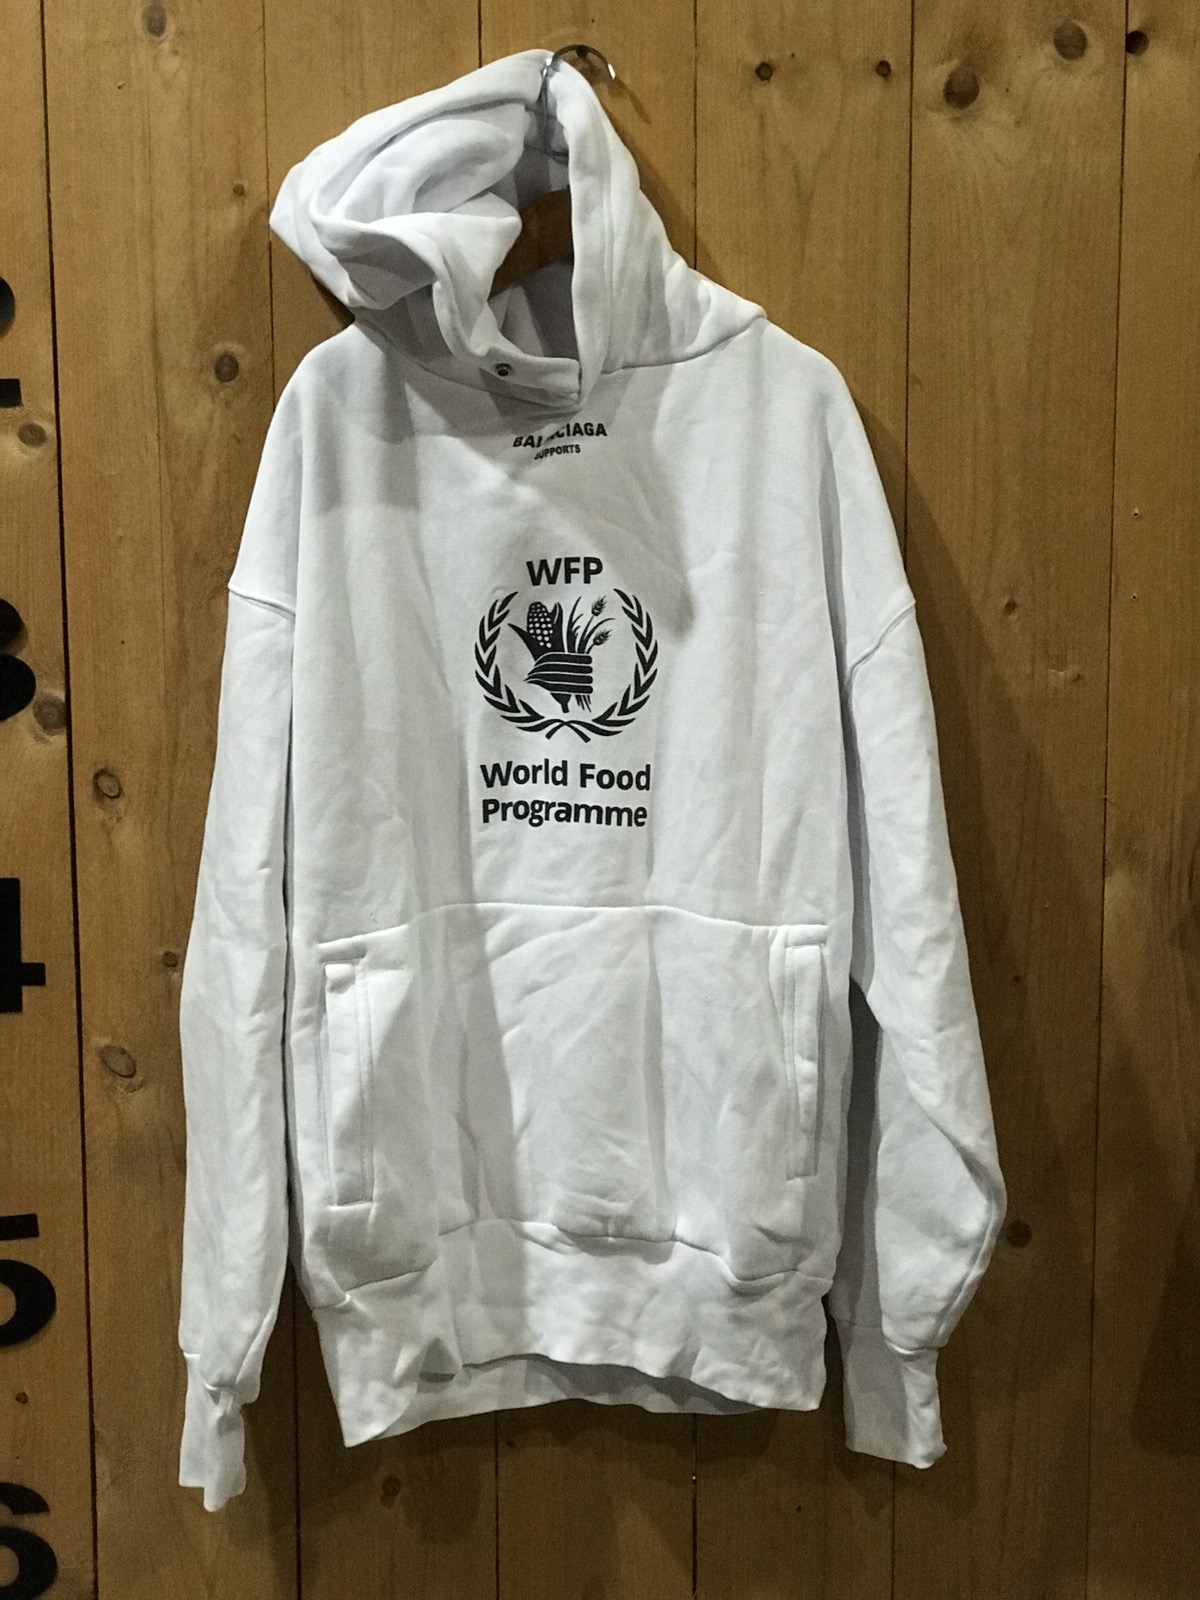 Balenciaga World Food Programme Hoodie Grailed